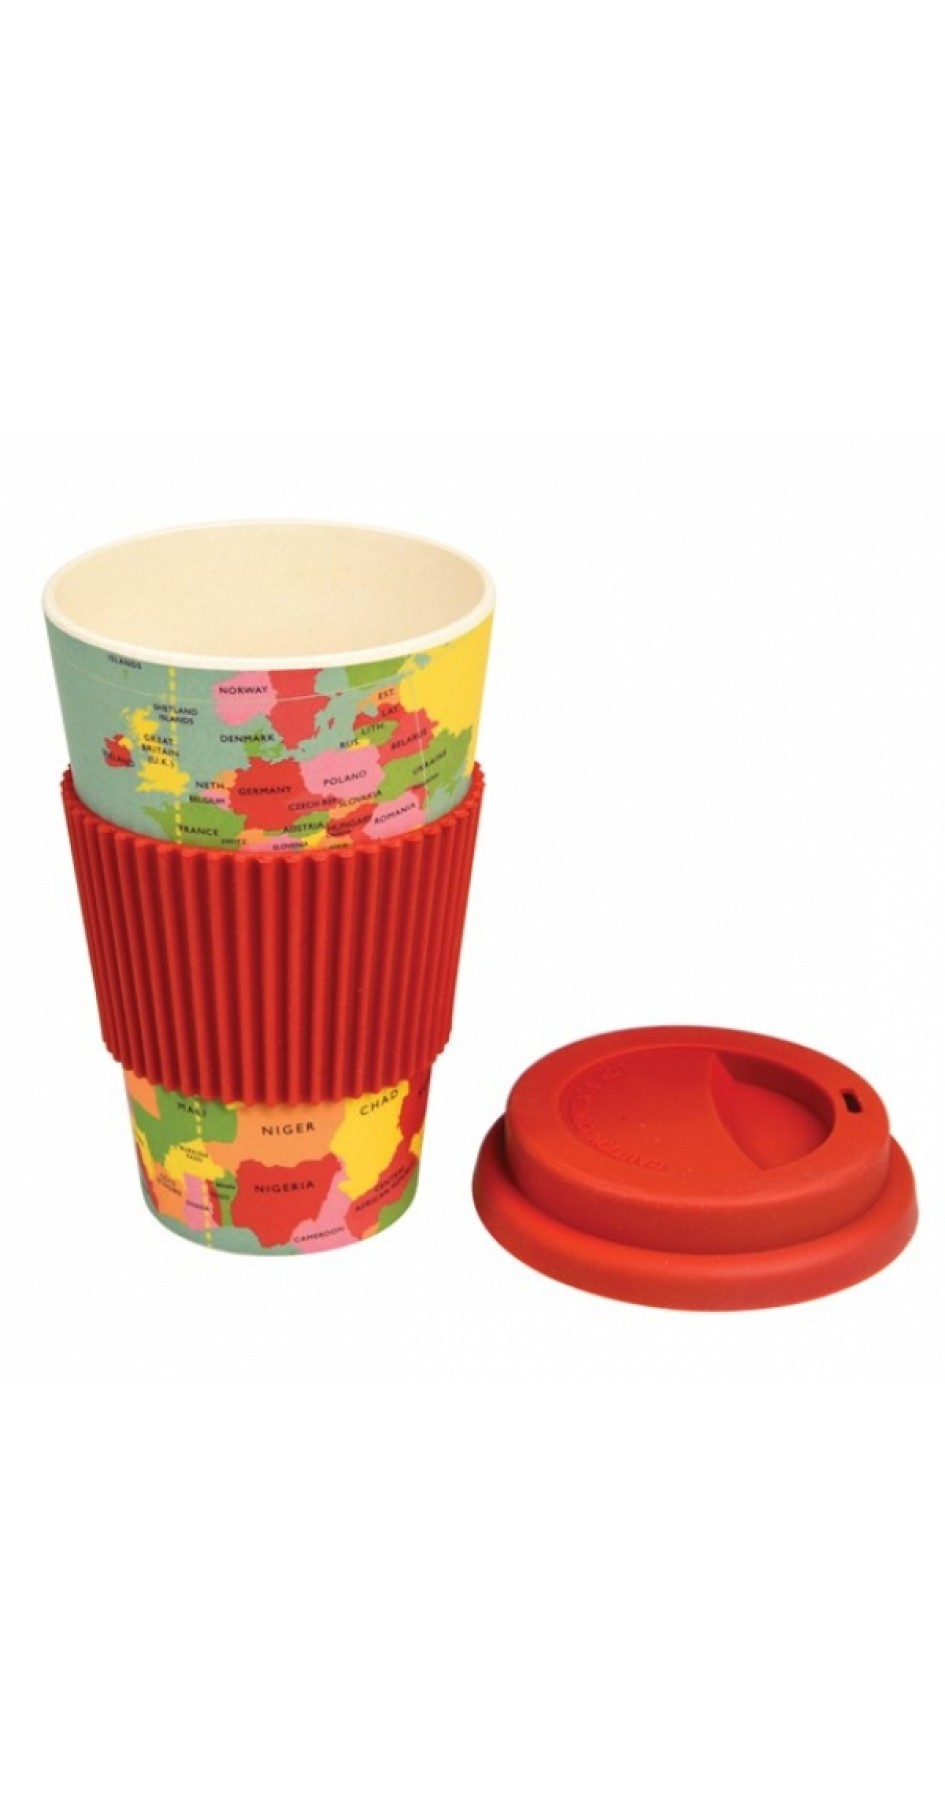 Bamboo Cup with map